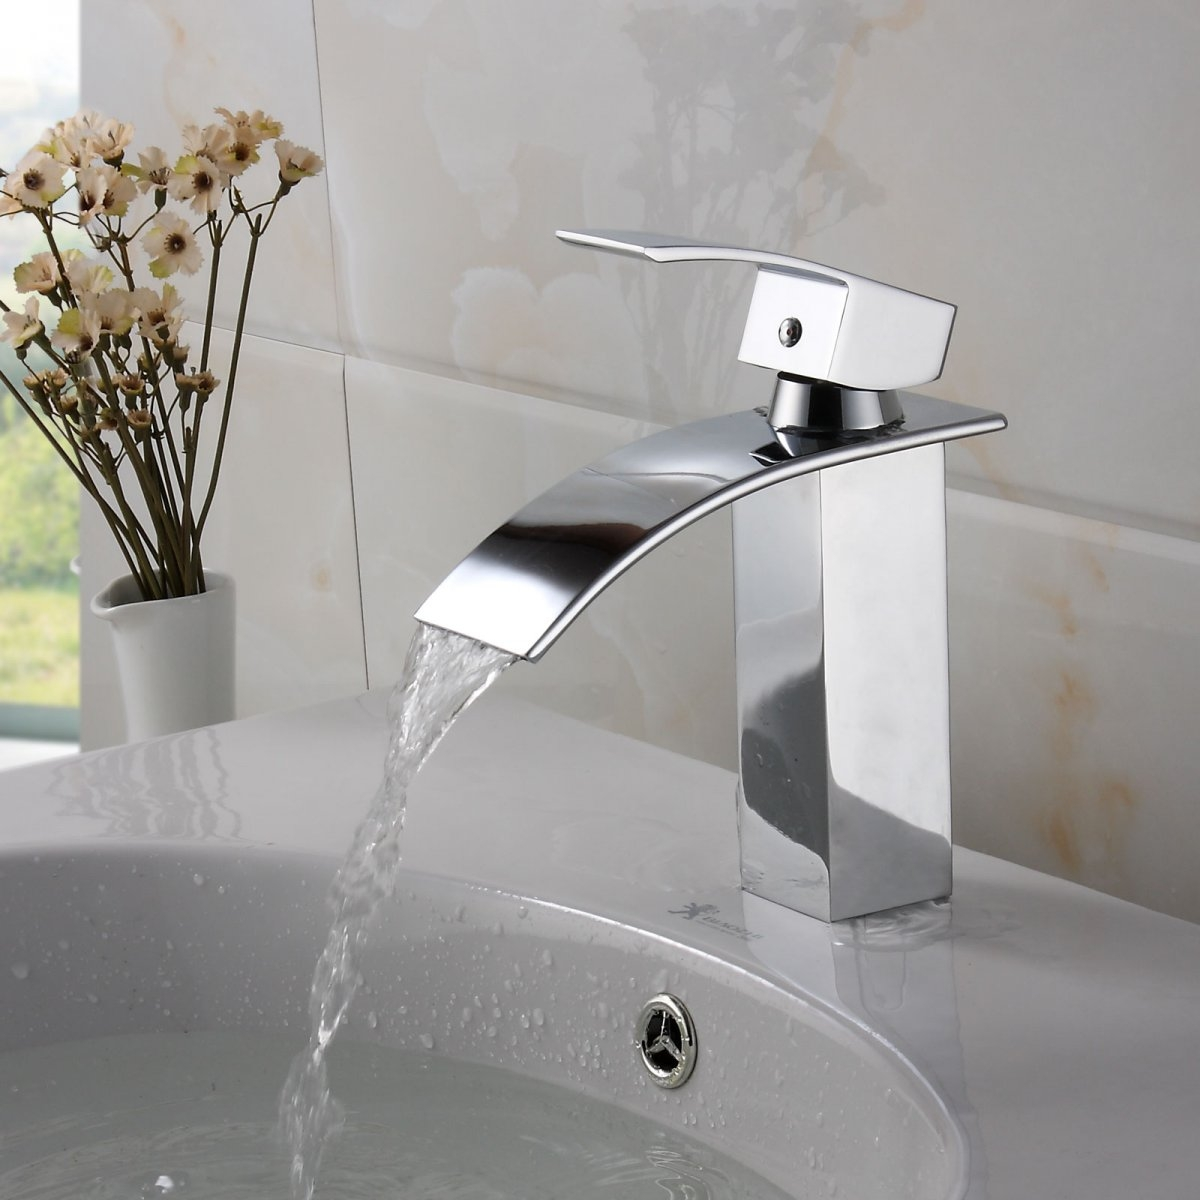 Cozy Designer Bathroom Sink Faucets modern faucets for bathroom sinks